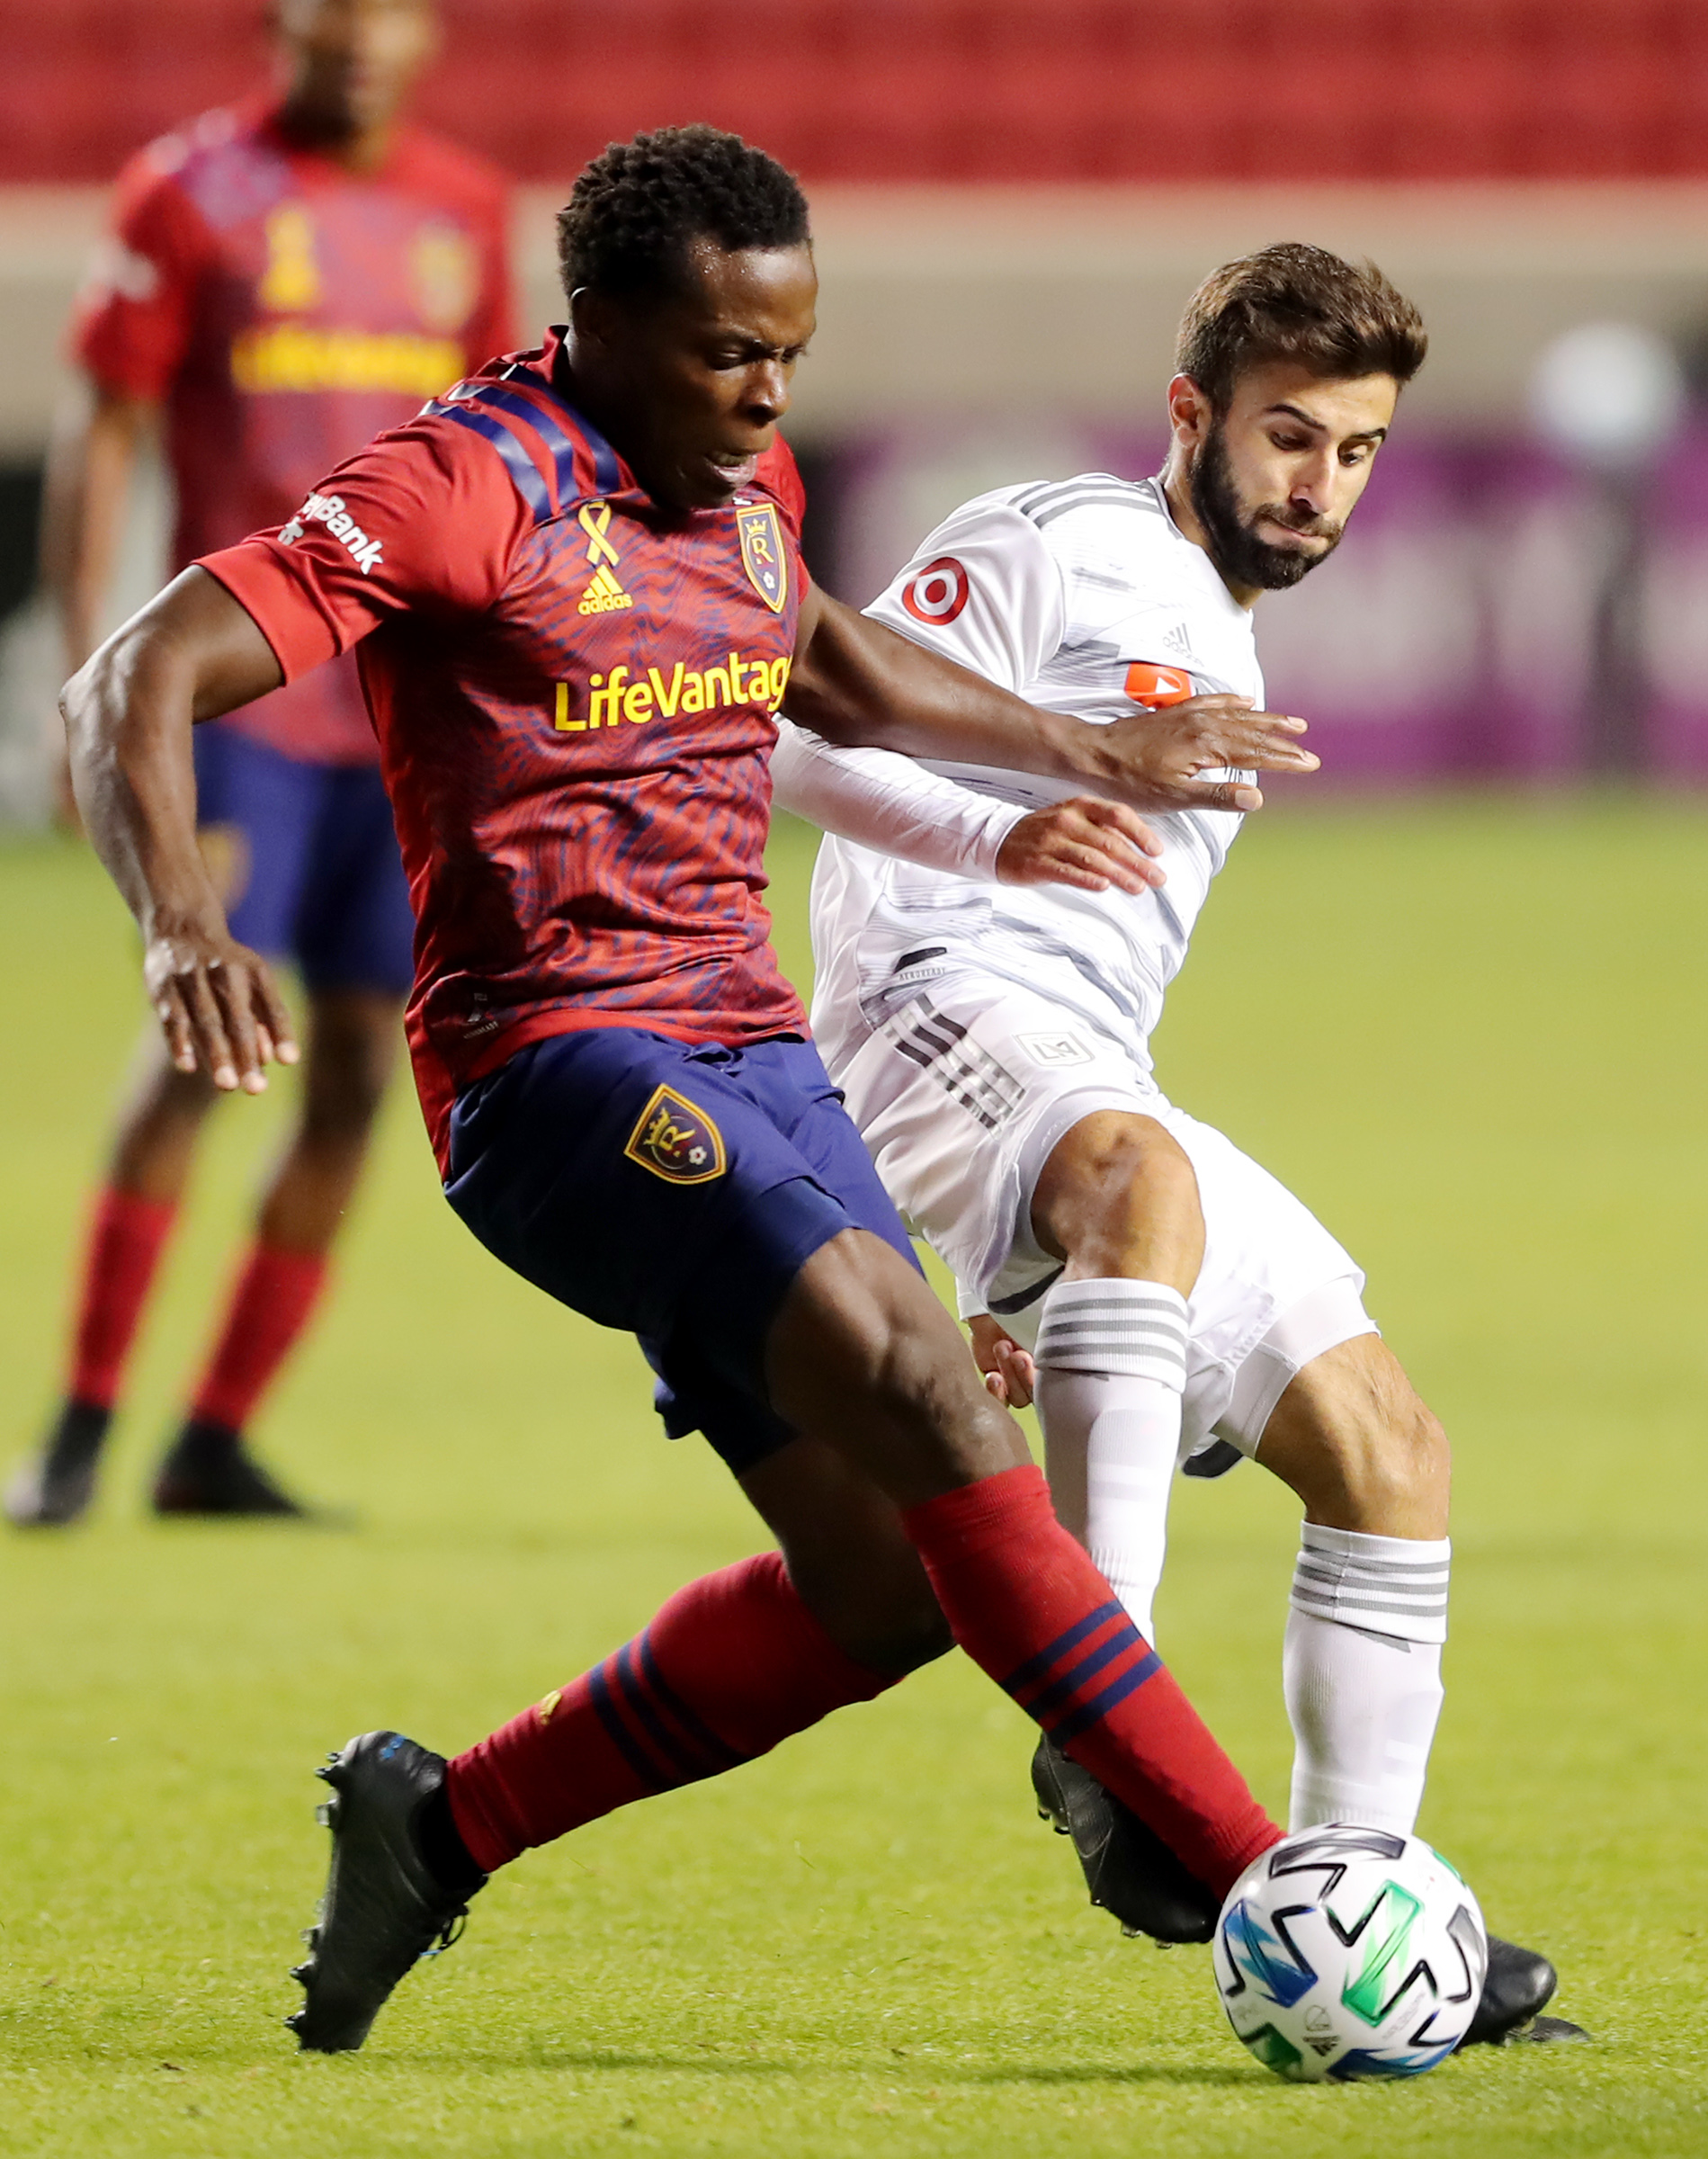 Real Salt Lake defender Nedum Onuoha (14) and Los Angeles FC forward Diego Rossi (9) battle for the ball as Real Salt Lake and Los Angeles FC play an MLS game at Rio Tinto Stadium in Sandy on Wednesday, Sept. 9, 2020. RSL won 3-0.